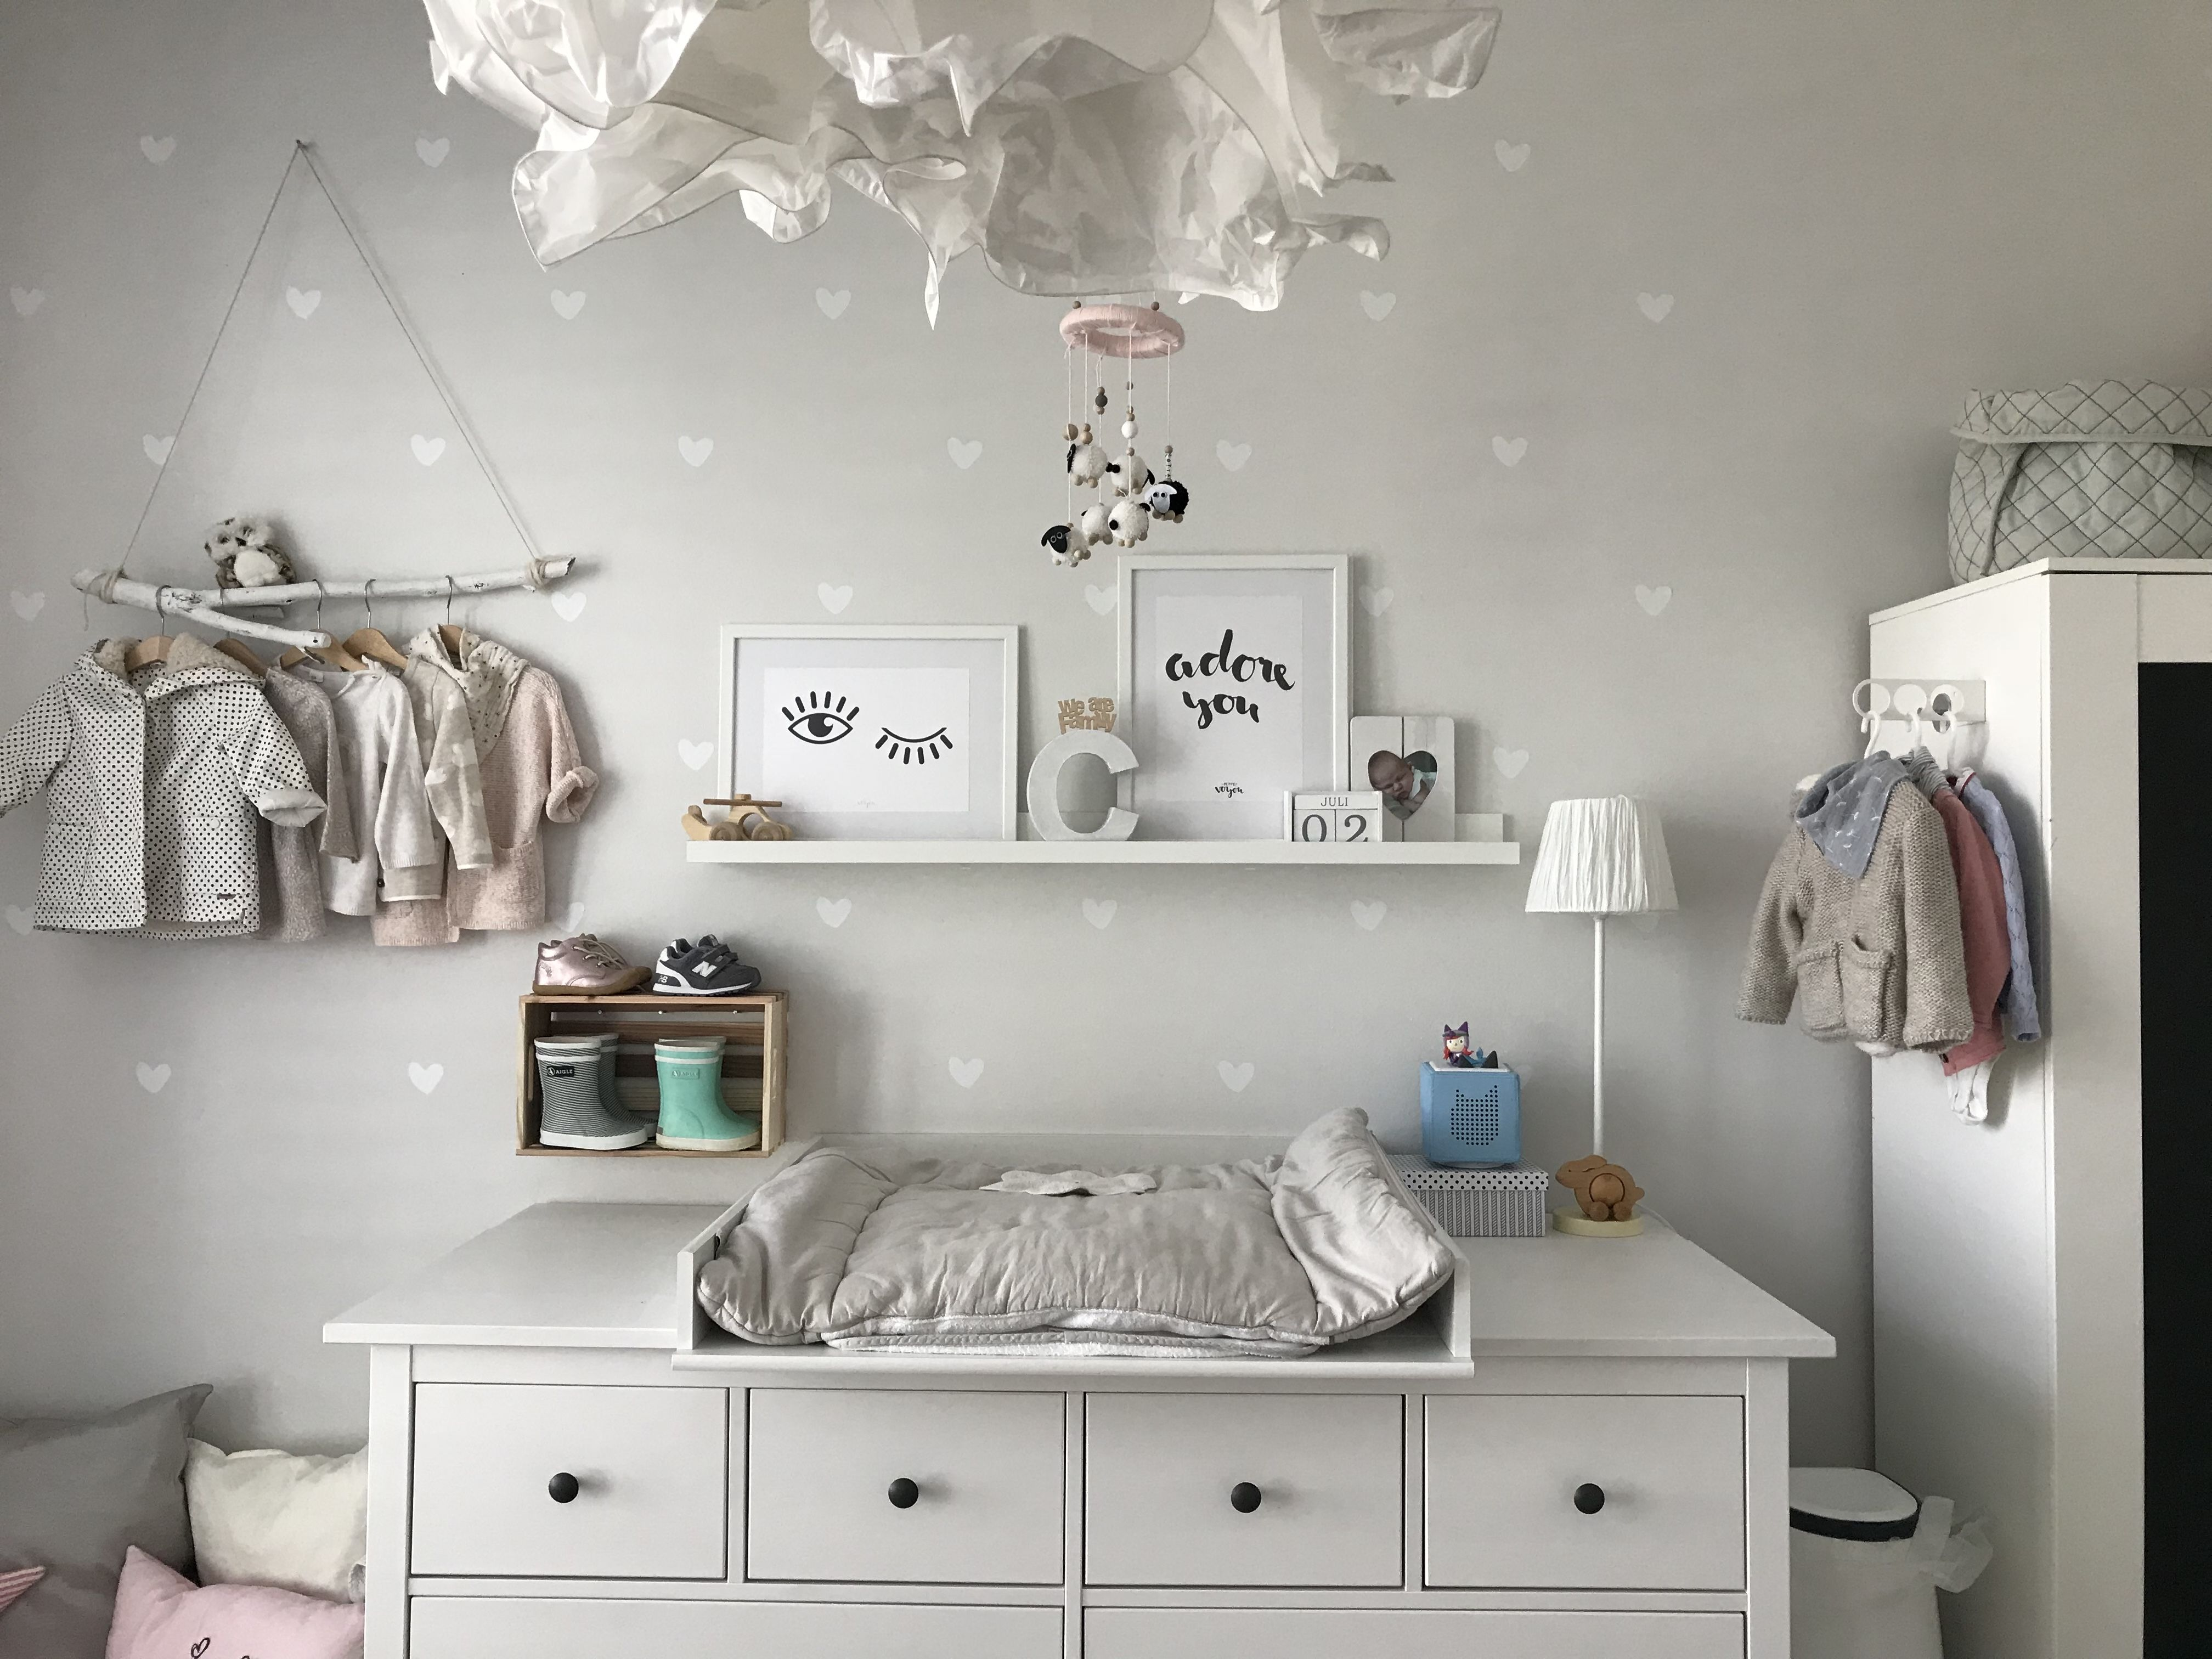 46 Luxurius Ikea Kinderzimmer At